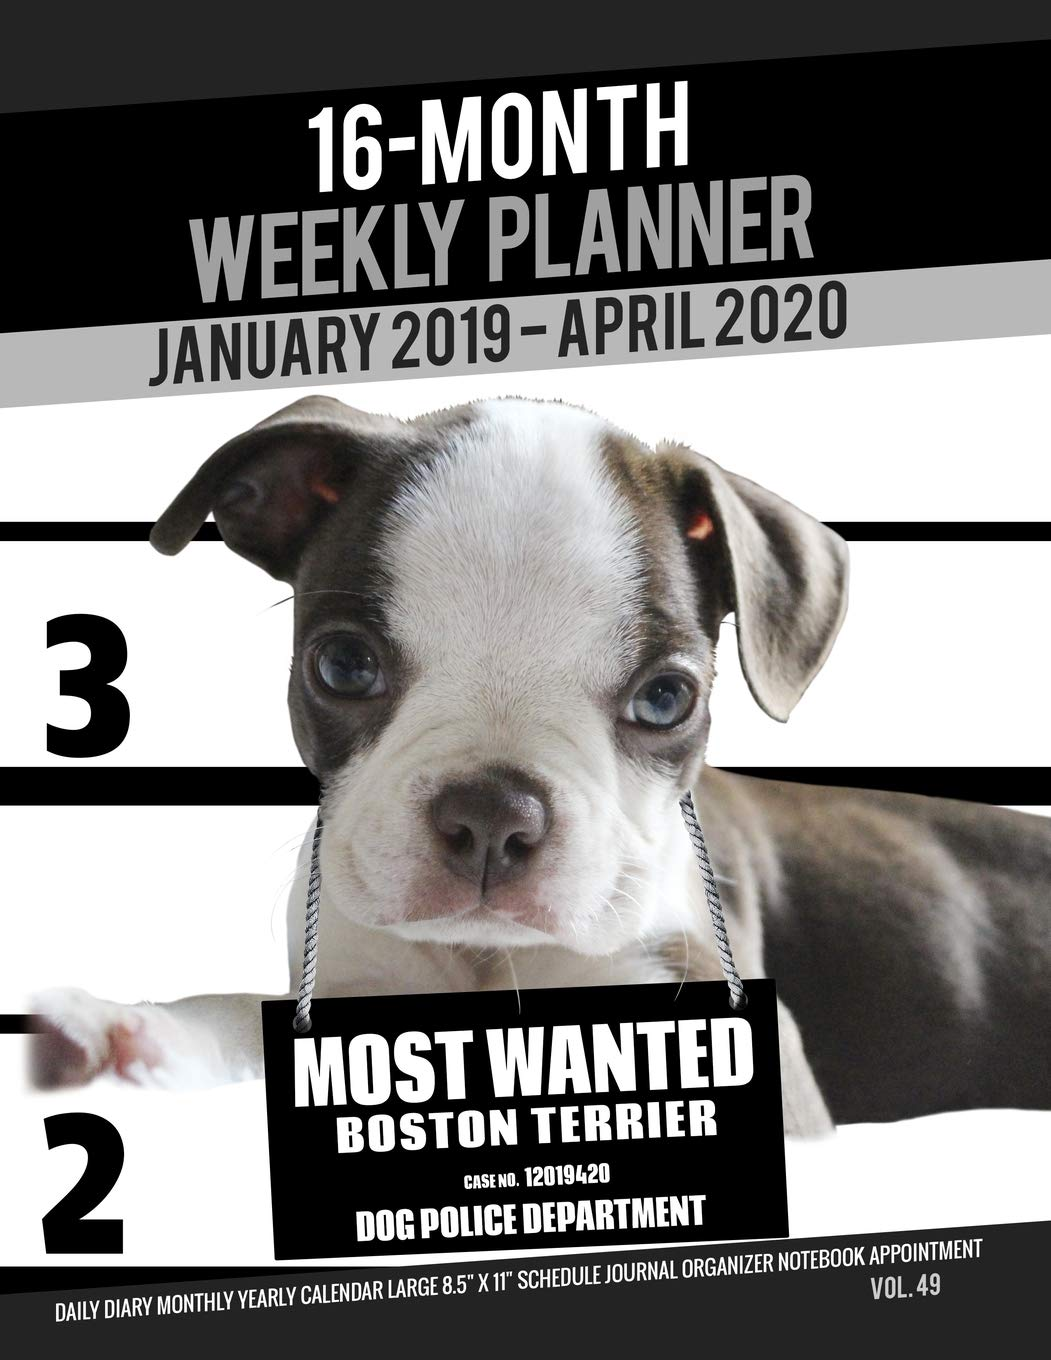 Boston Calendar January 2020 16 Month January 2019  April 2020 Weekly Planner   Most Wanted